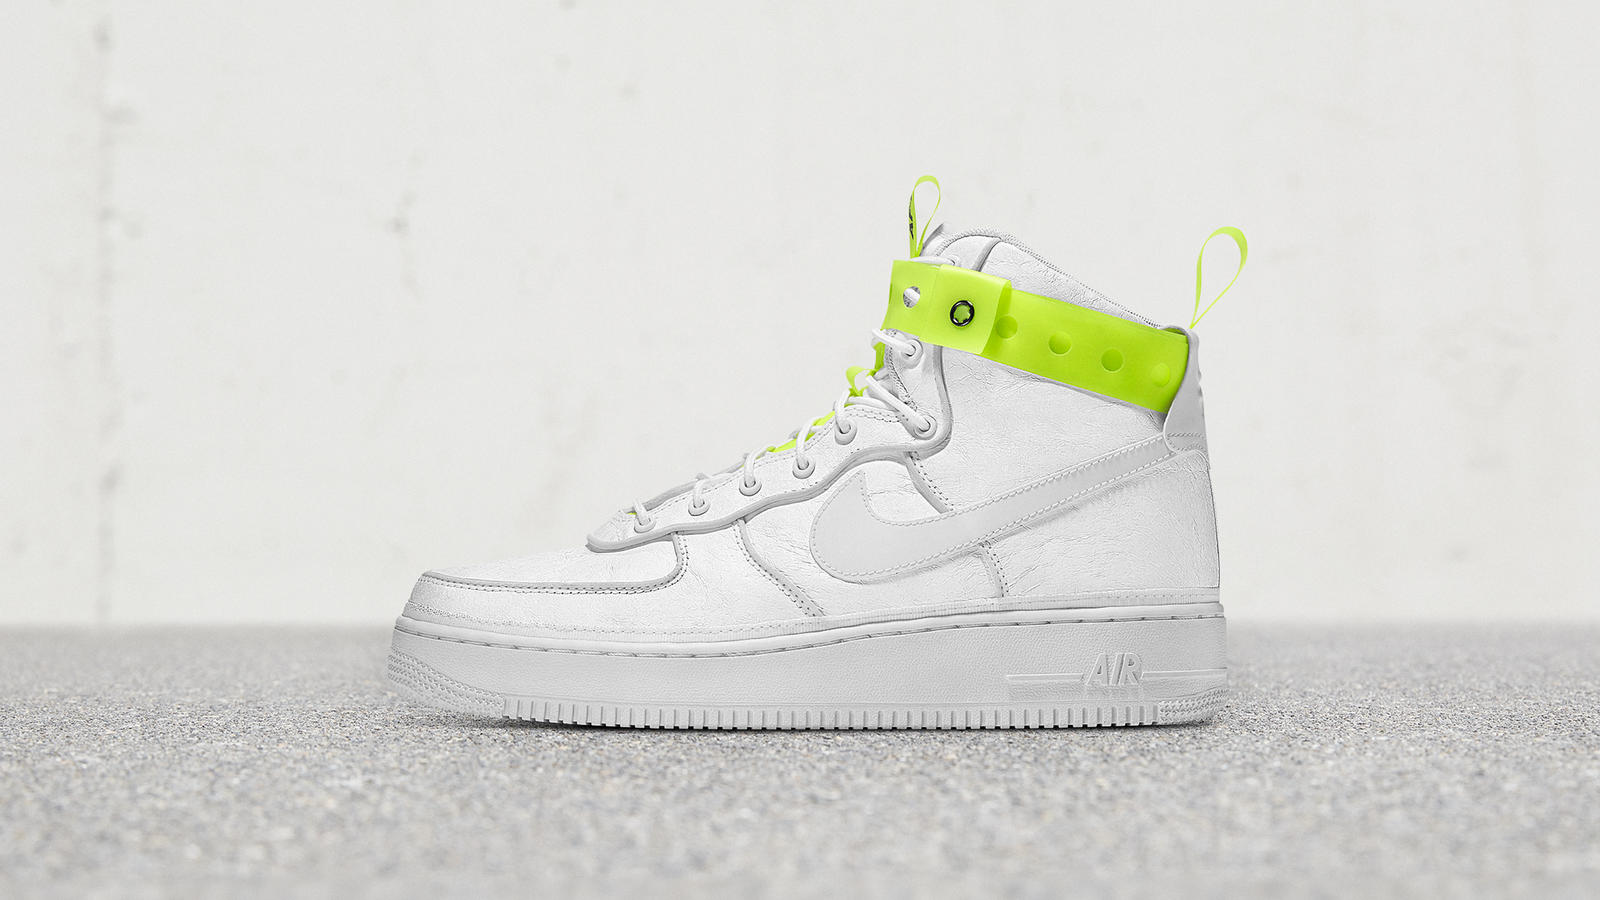 nike_air_force_1_high_07_qs_573967_101_1